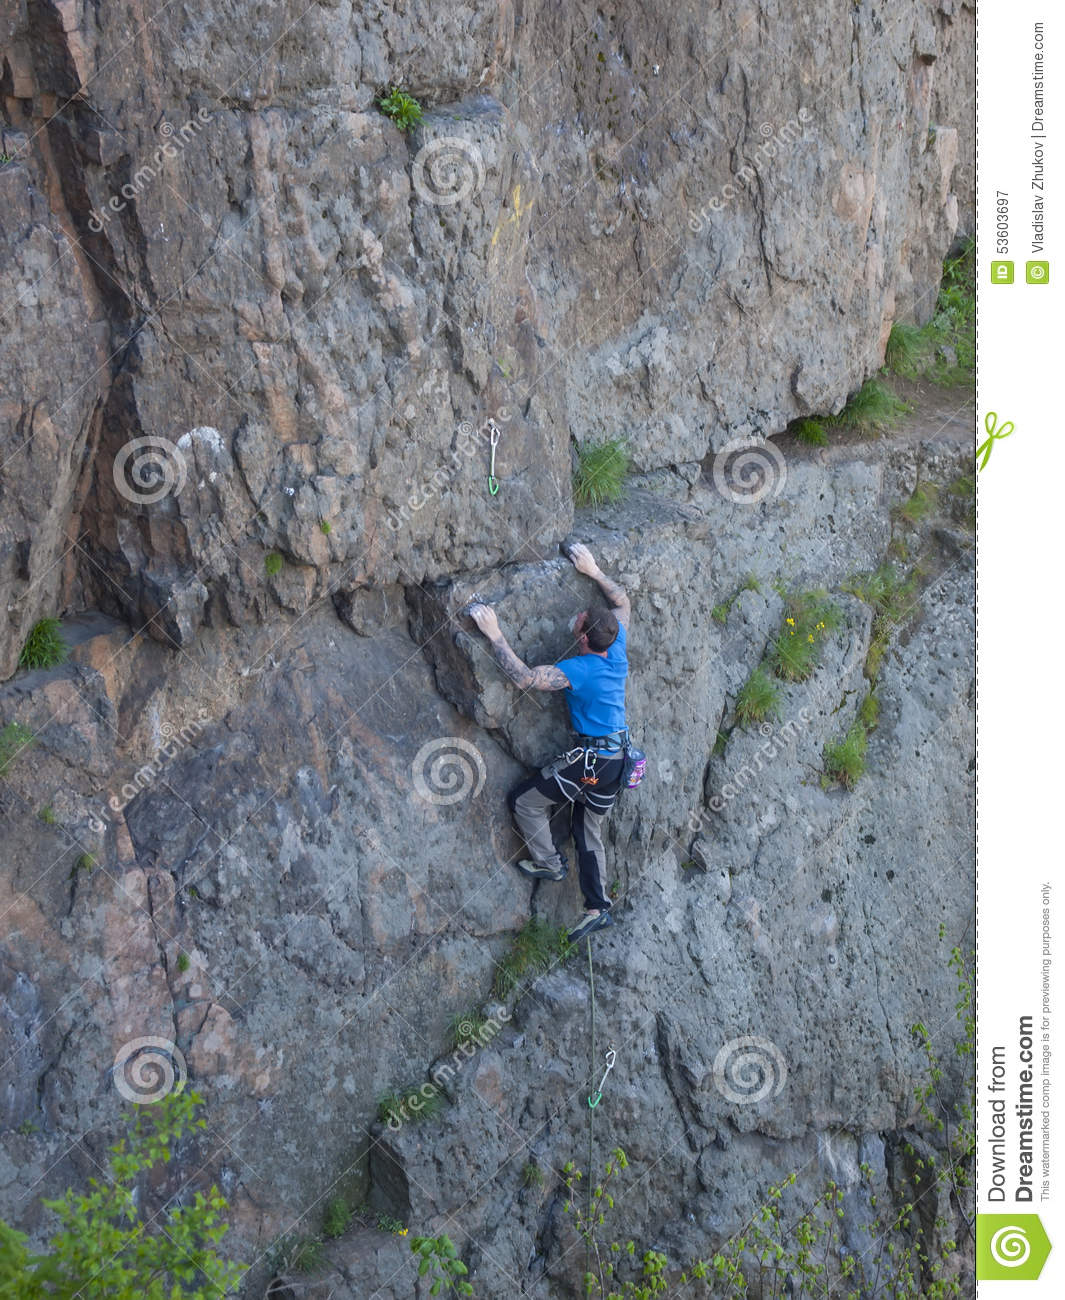 Man With Tattoos Climbing Wall Stock Image Image Of Hobbies Courage 53603697